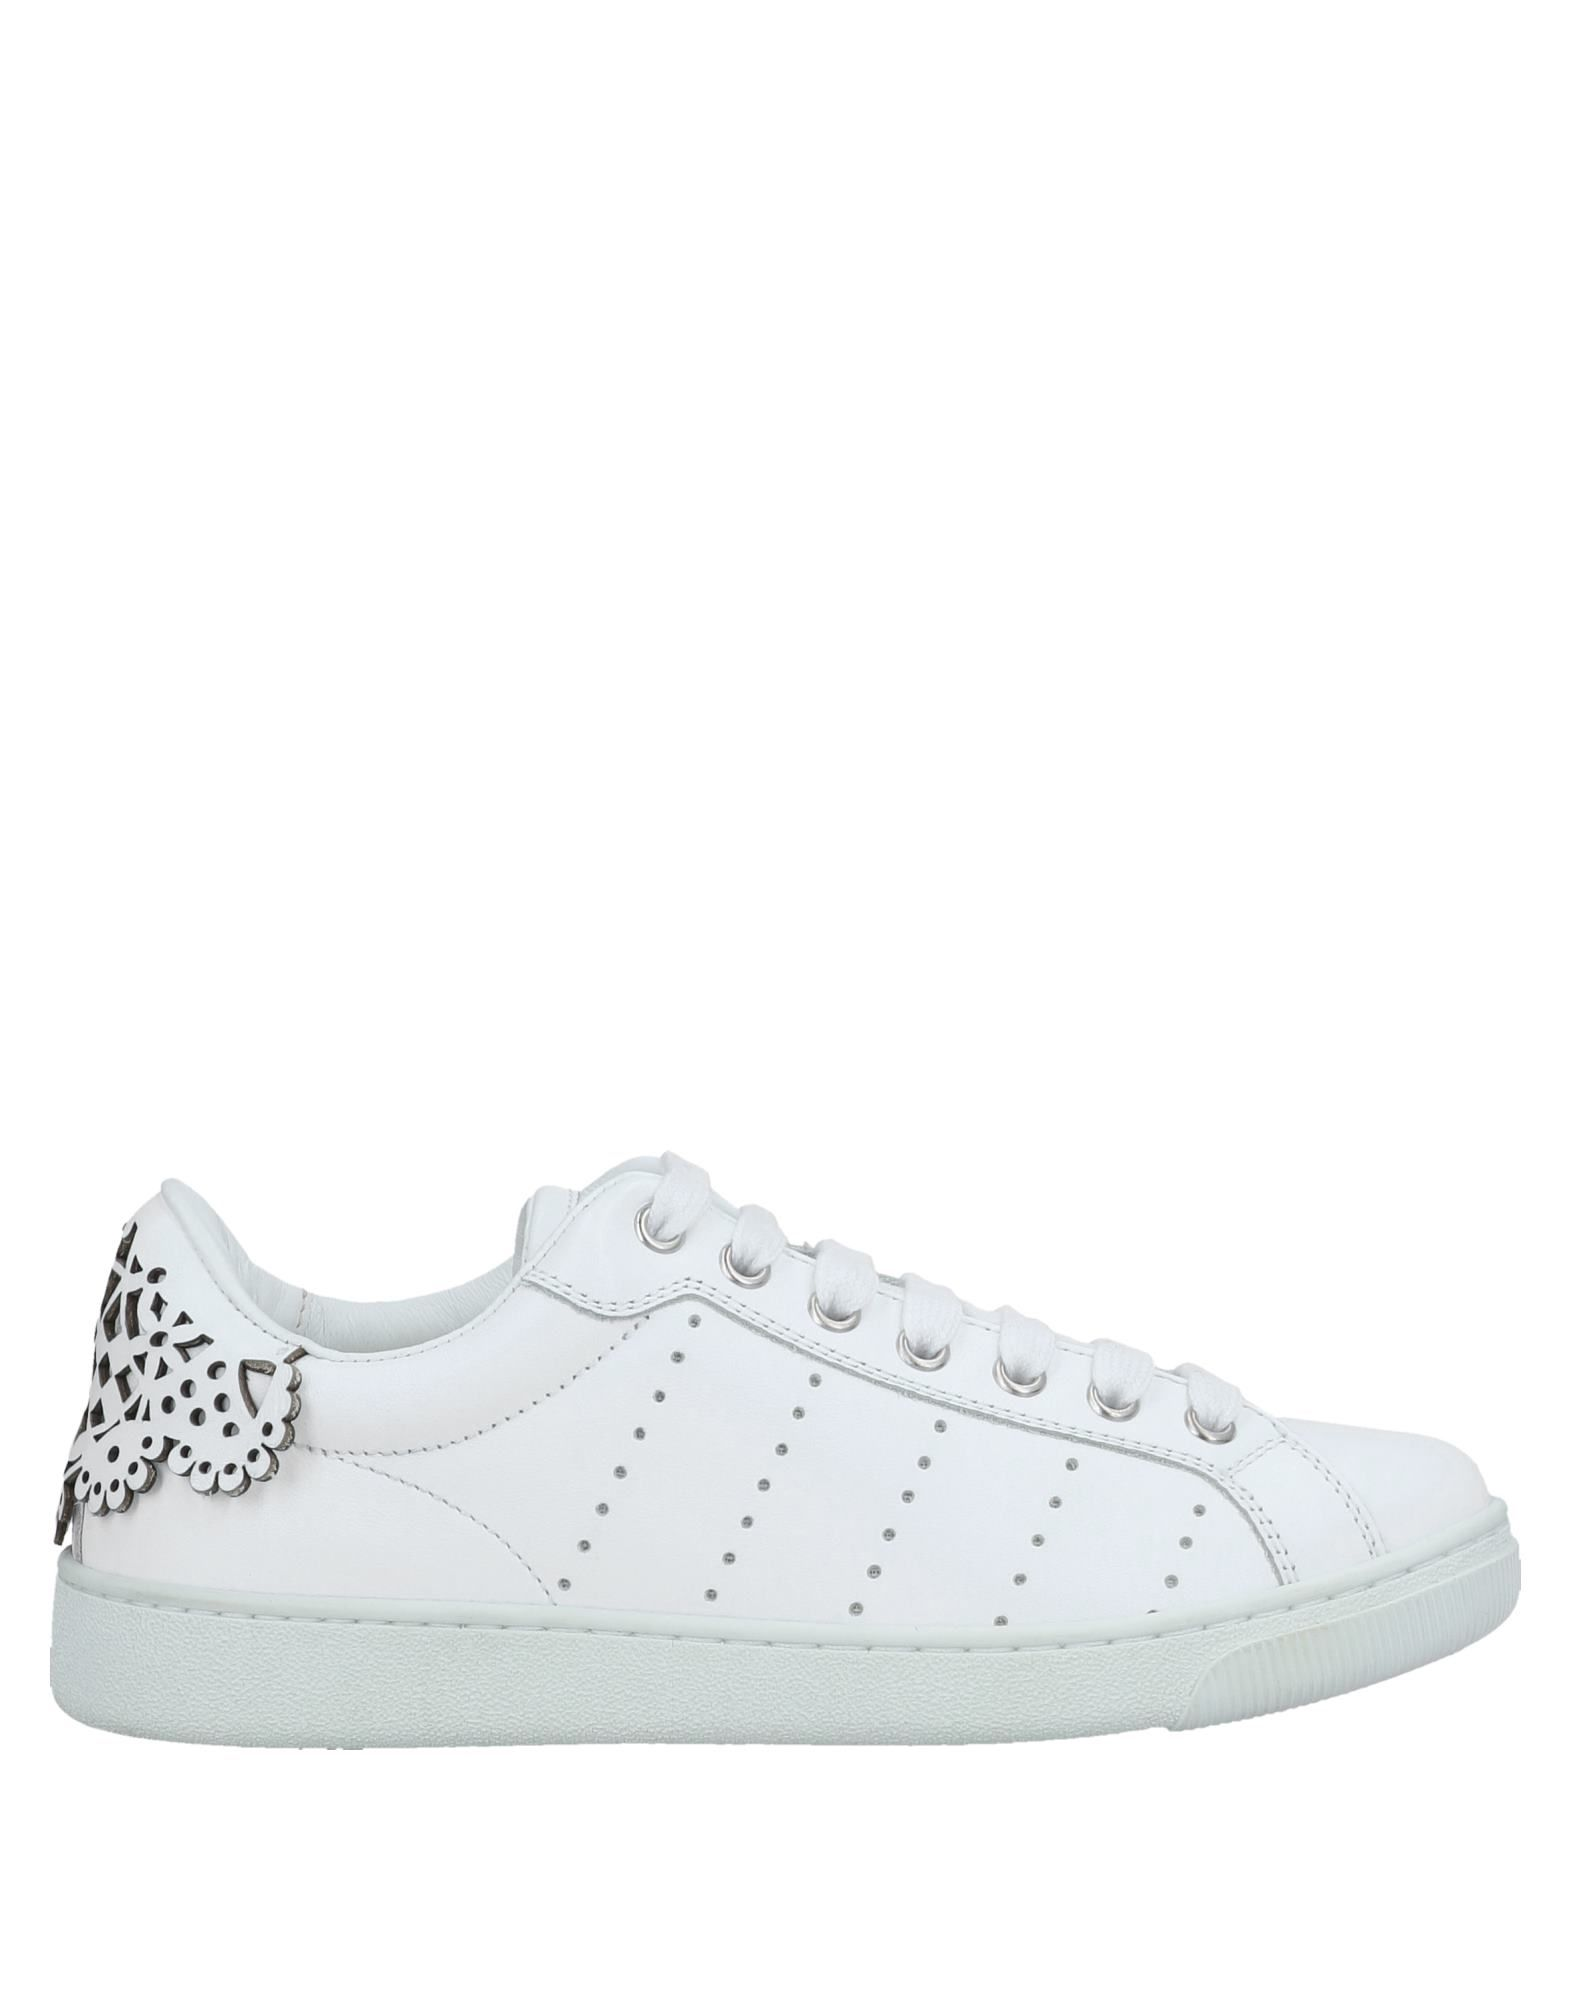 Dsquared2 Sneakers - Women Dsquared2 Sneakers online on 11558684WG  United Kingdom - 11558684WG on 803fe0